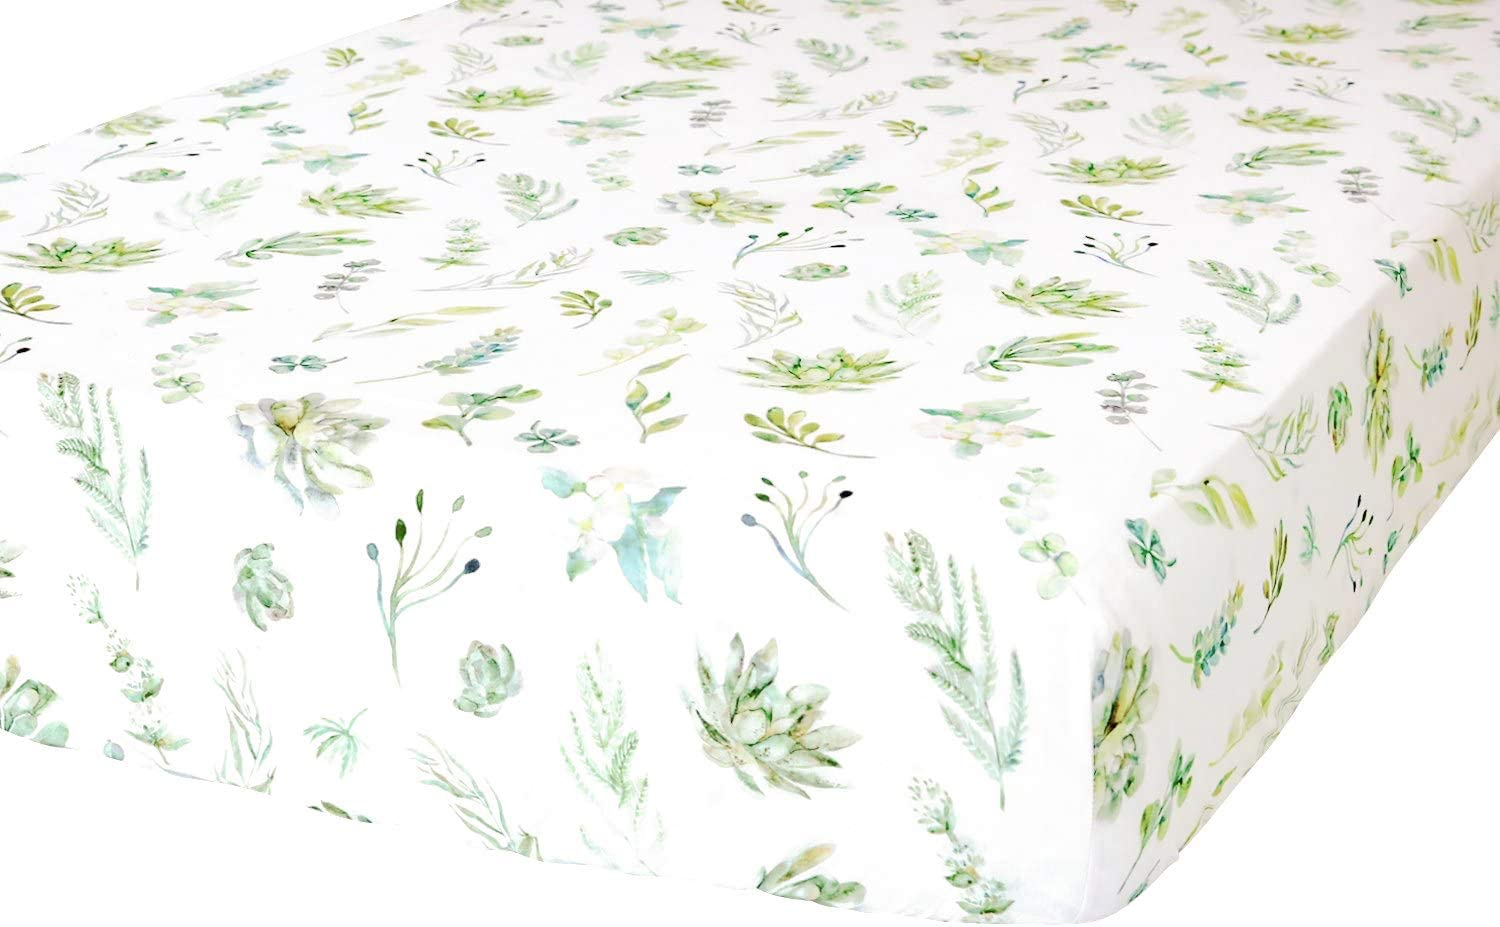 ADDISON BELLE 100% Organic Cotton Fitted Crib Sheet - Premium Baby Bedding - Soft, Breathable & Durable - Succulents Print